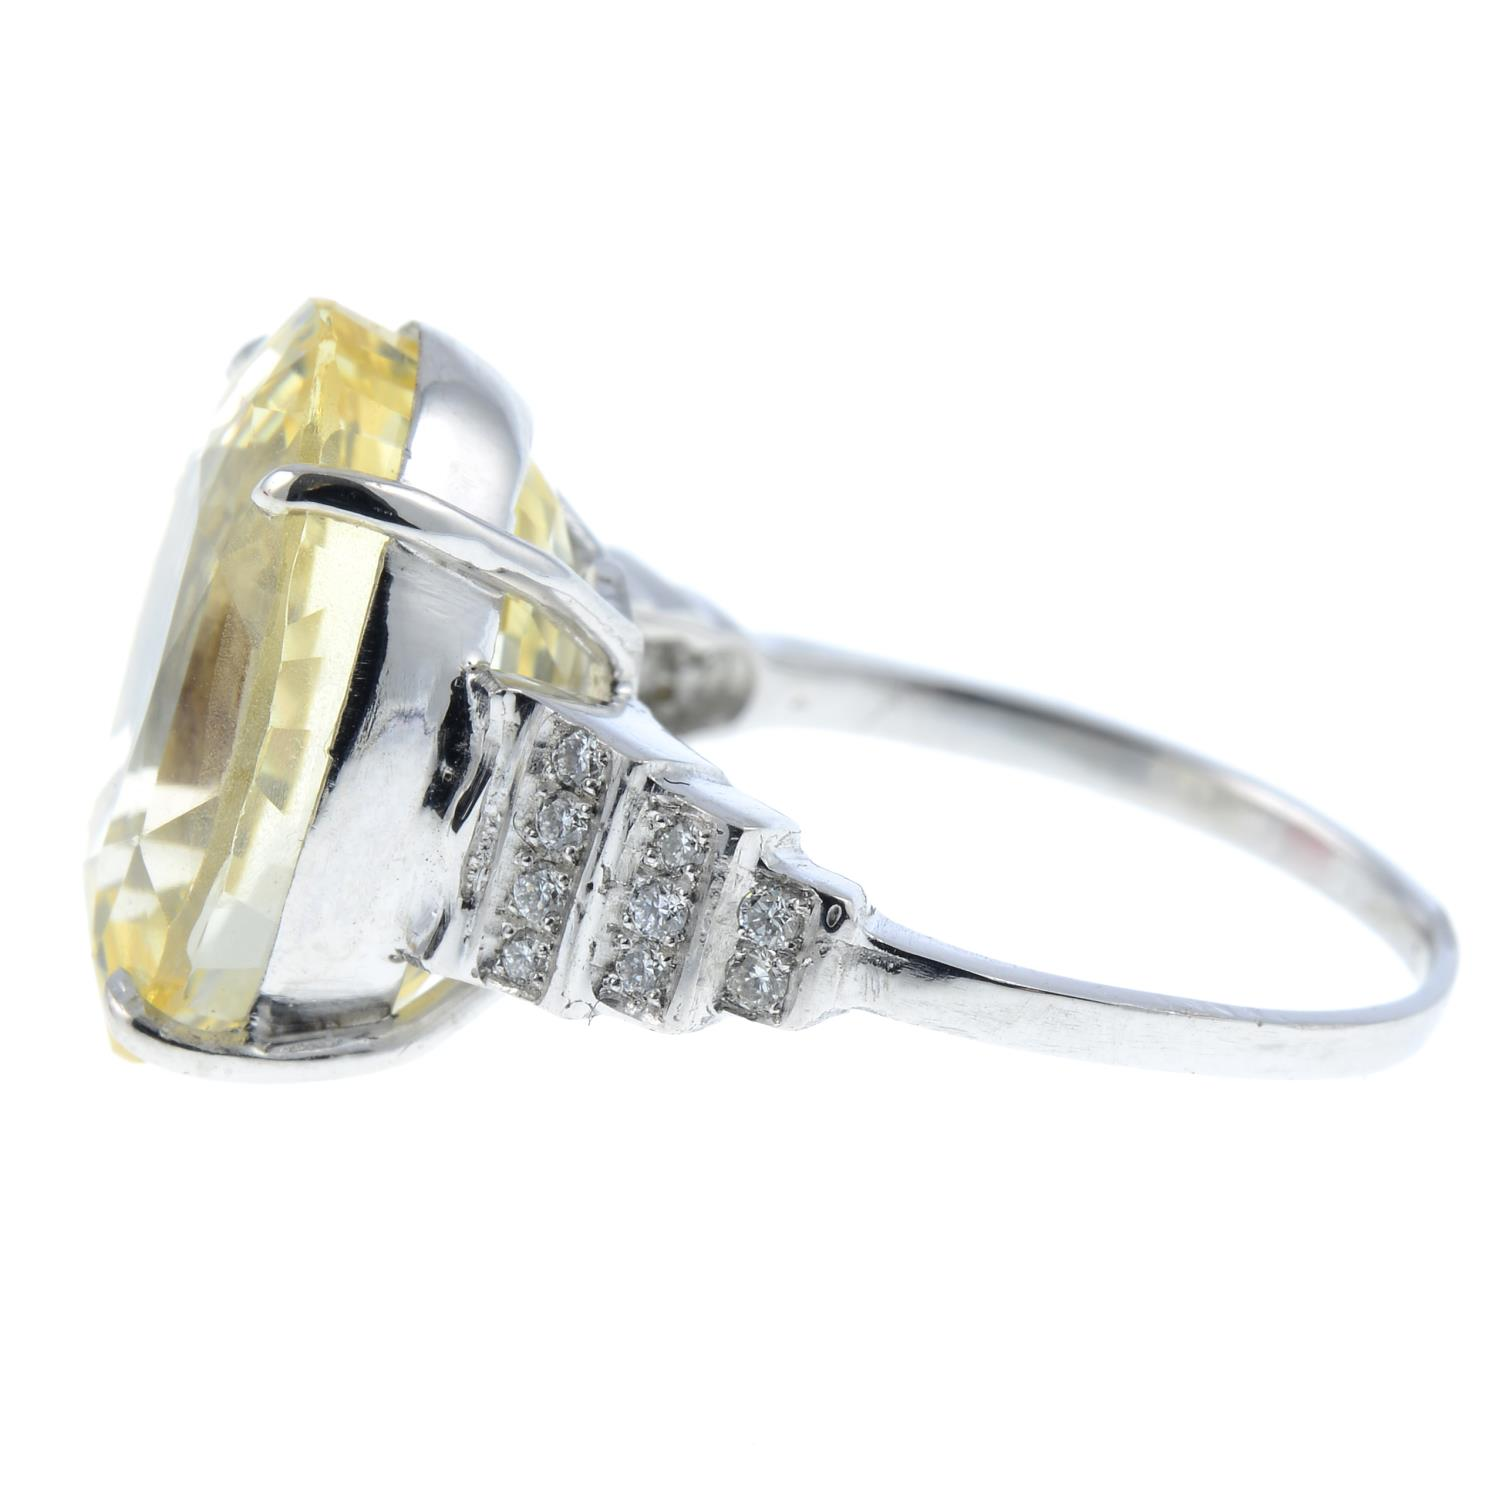 A yellow sapphire and diamond ring.Sapphire weight 15.31cts.Estimated total diamond weight 0.10ct, - Image 4 of 6